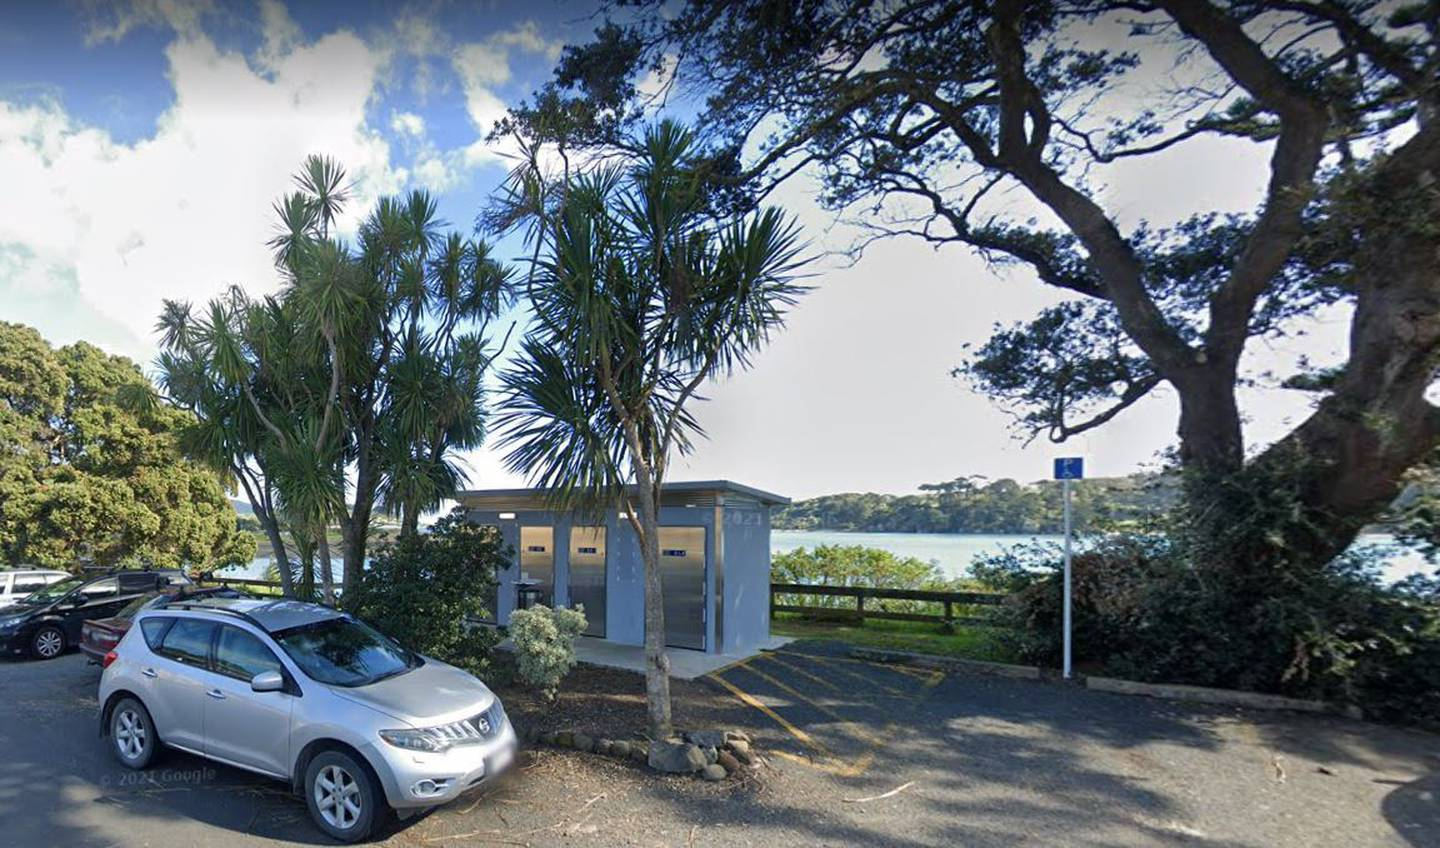 The public toilets facility on Cliff St, Raglan, has been connected to a person with Covid-19. Image / Google